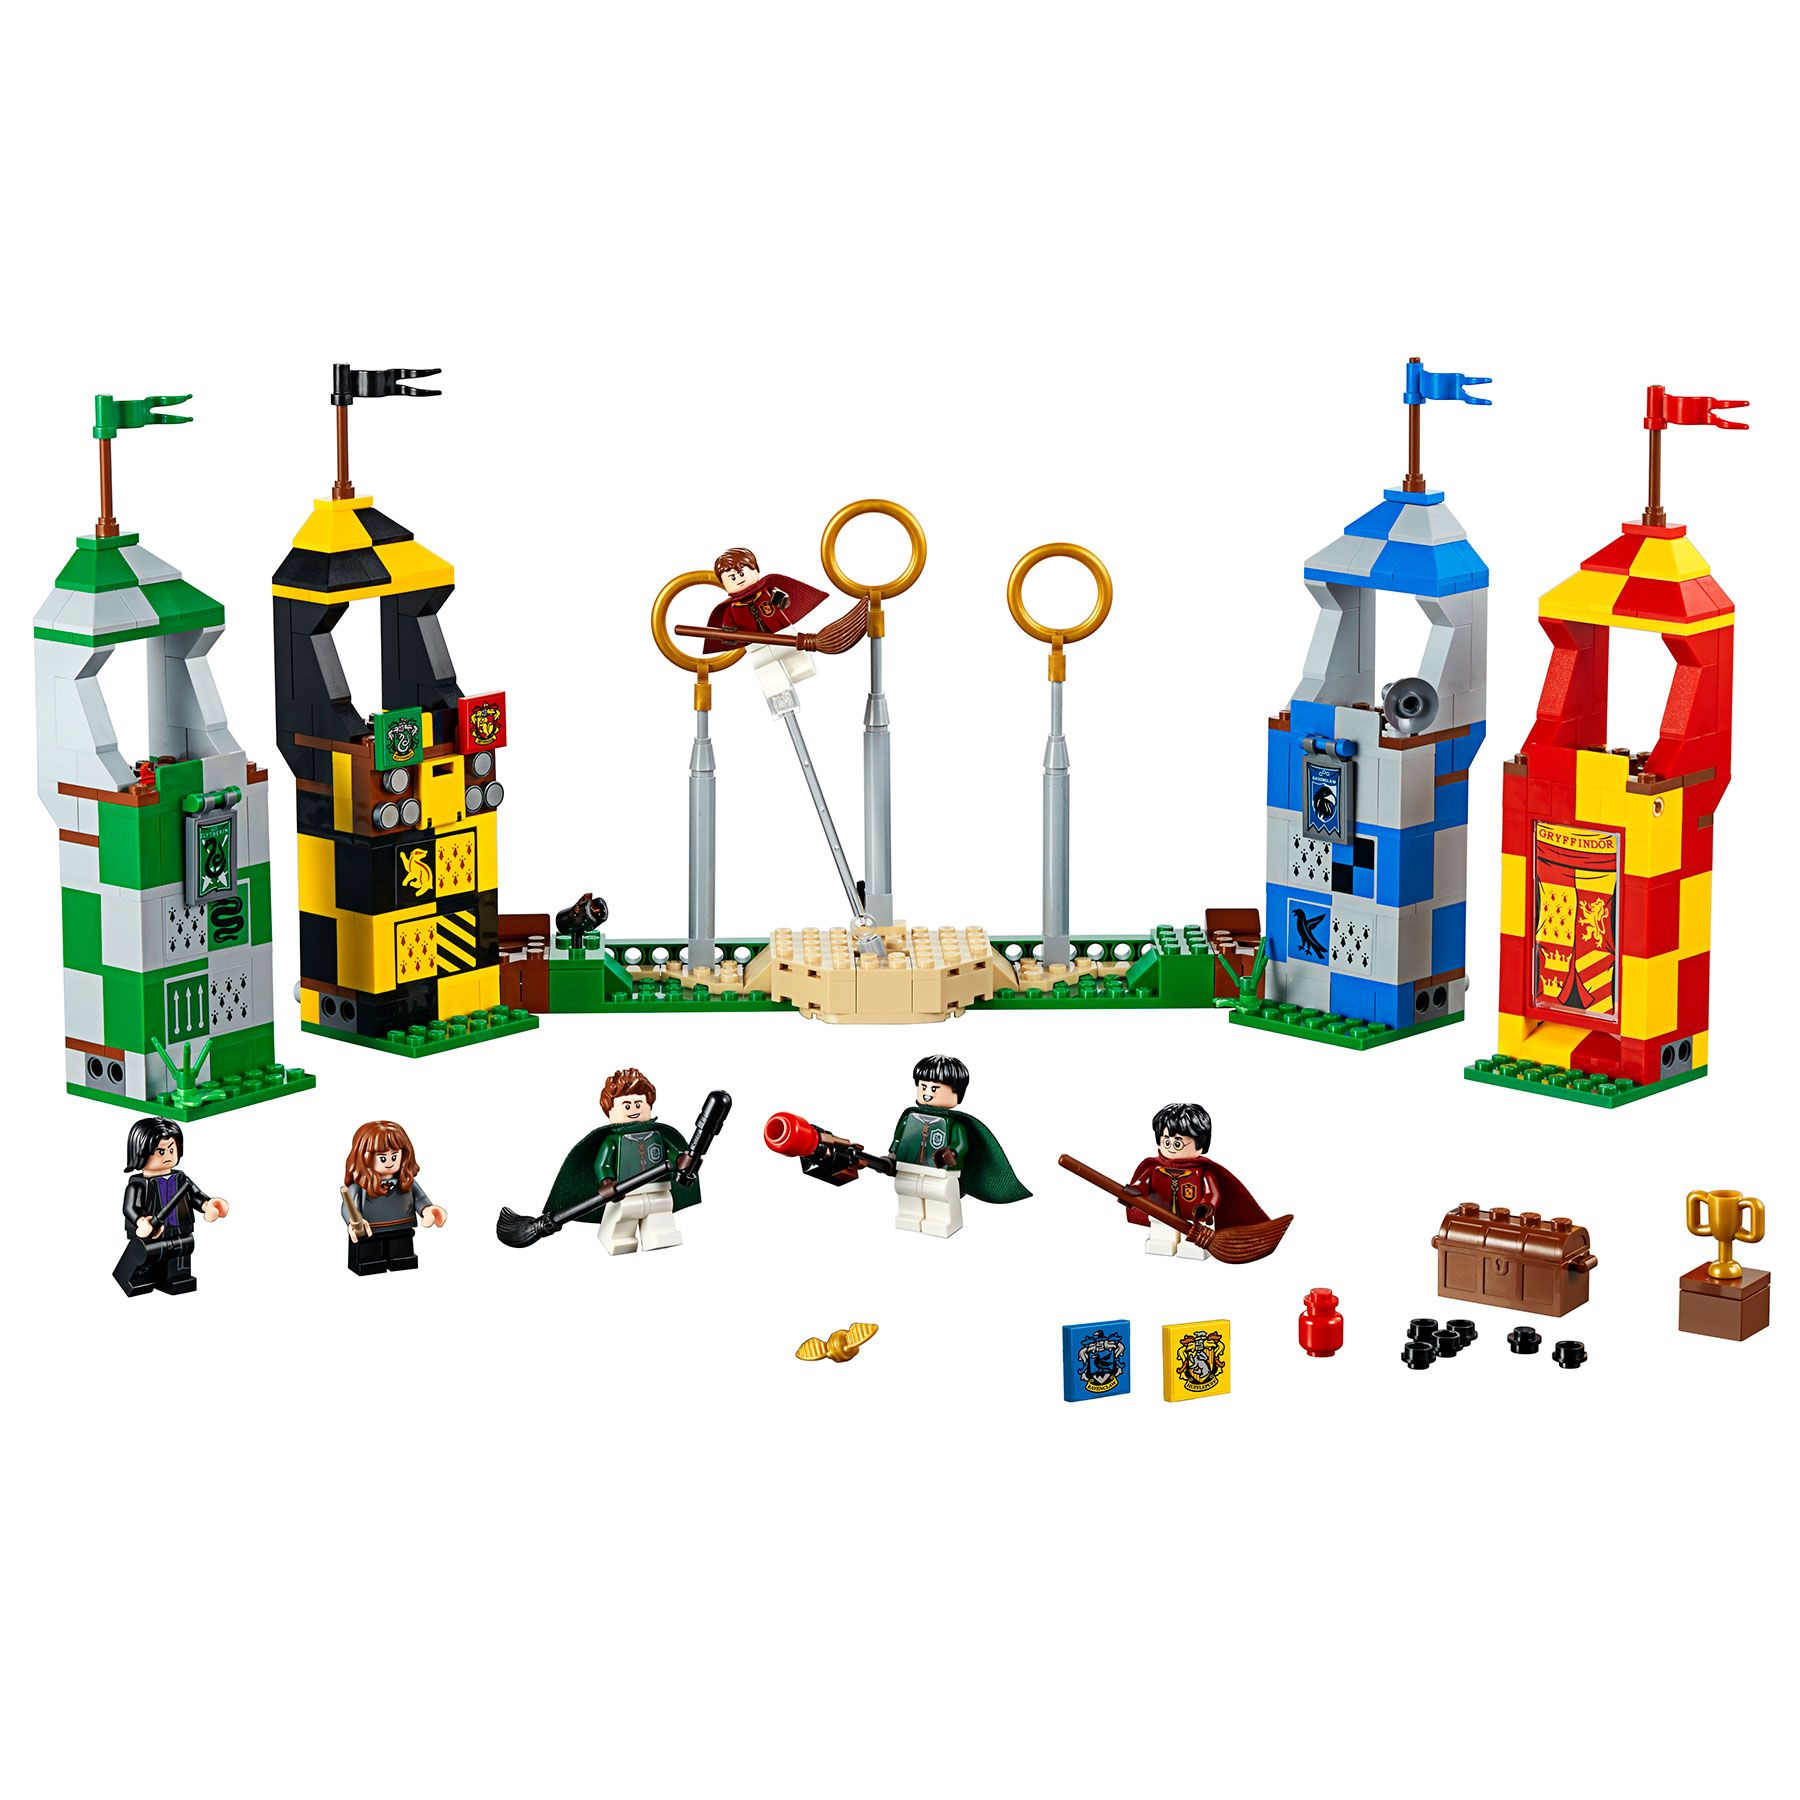 LEGO Harry Potter 75956 Quidditch™ Turnier LEGO_Harry_Potter_75956_Quidditch_Match.jpg